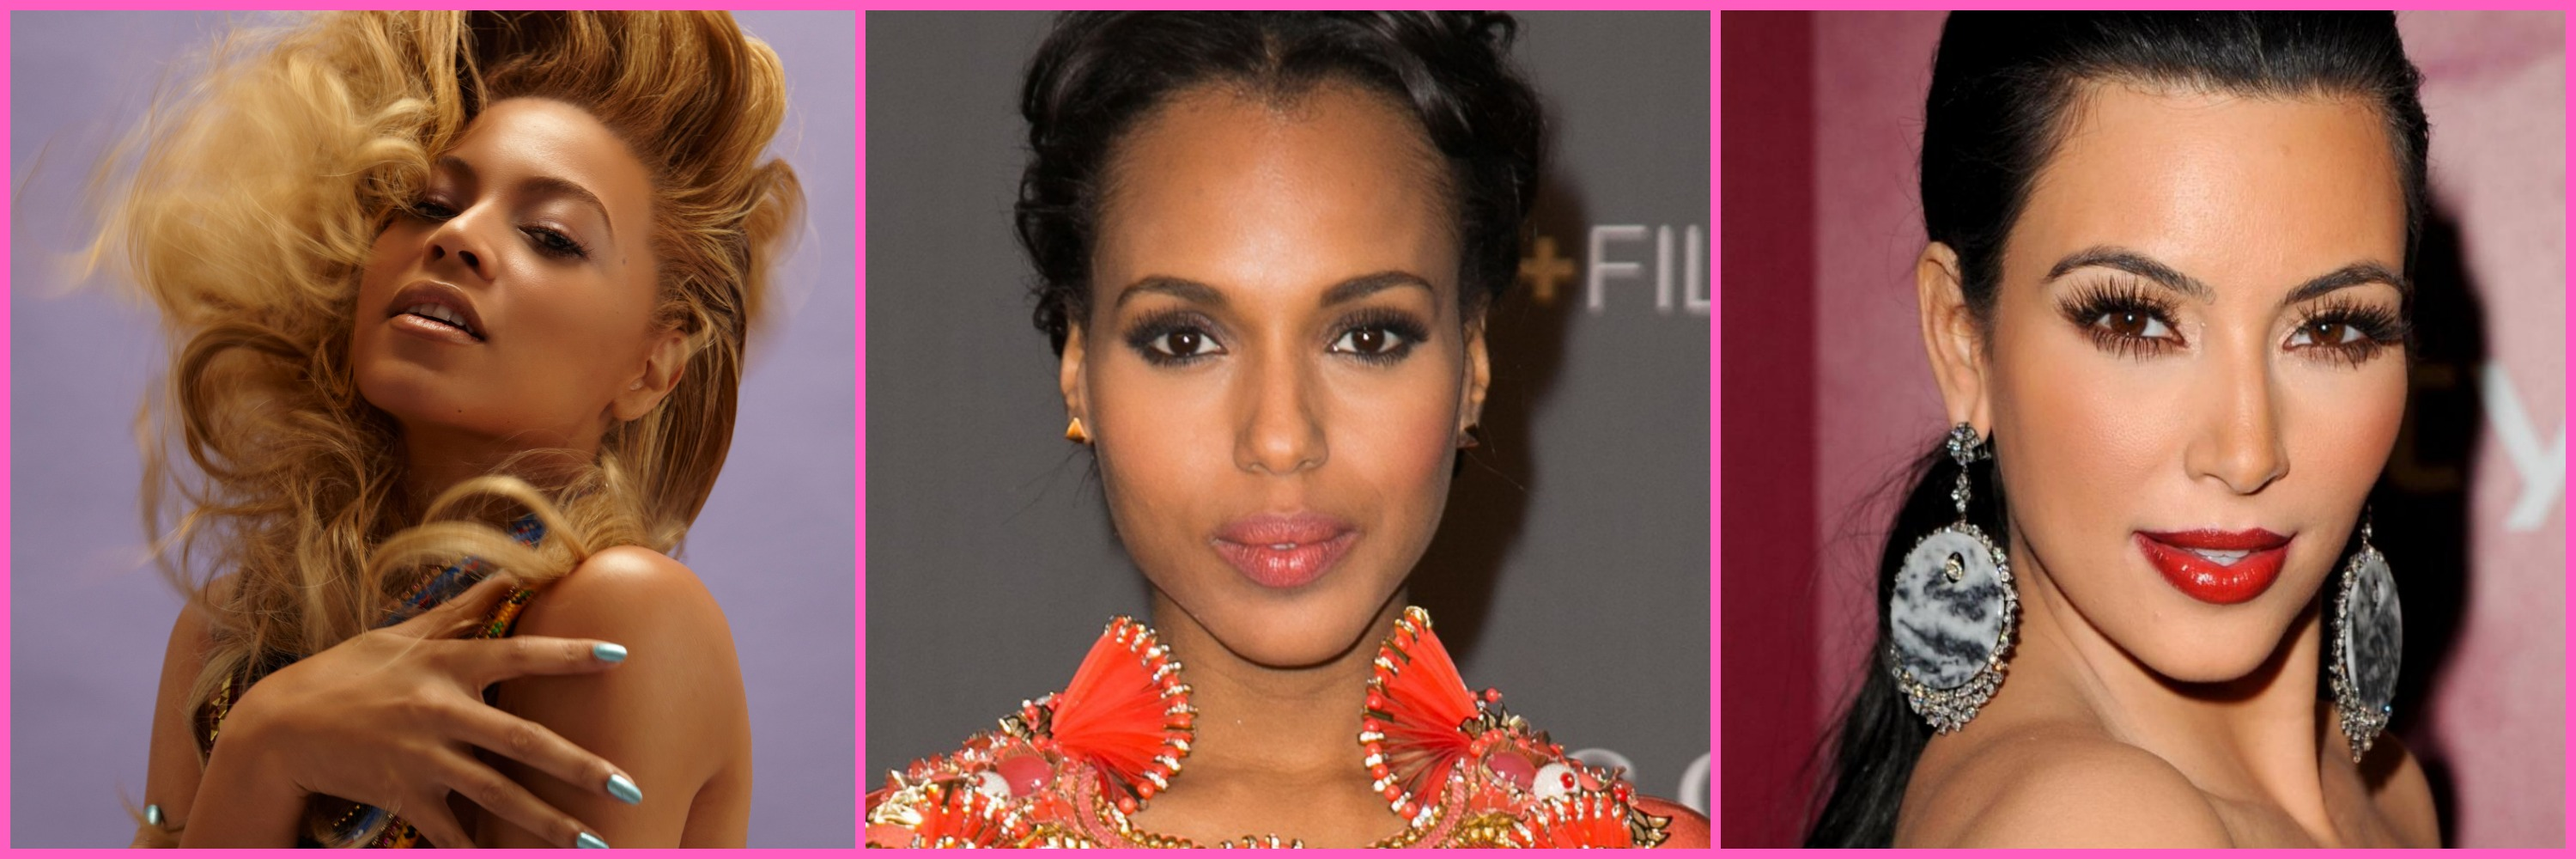 Beyoncé, Kerry Washington and Kim Kardashian Featured As Part of 50 Most Powerful Moms List of 2014